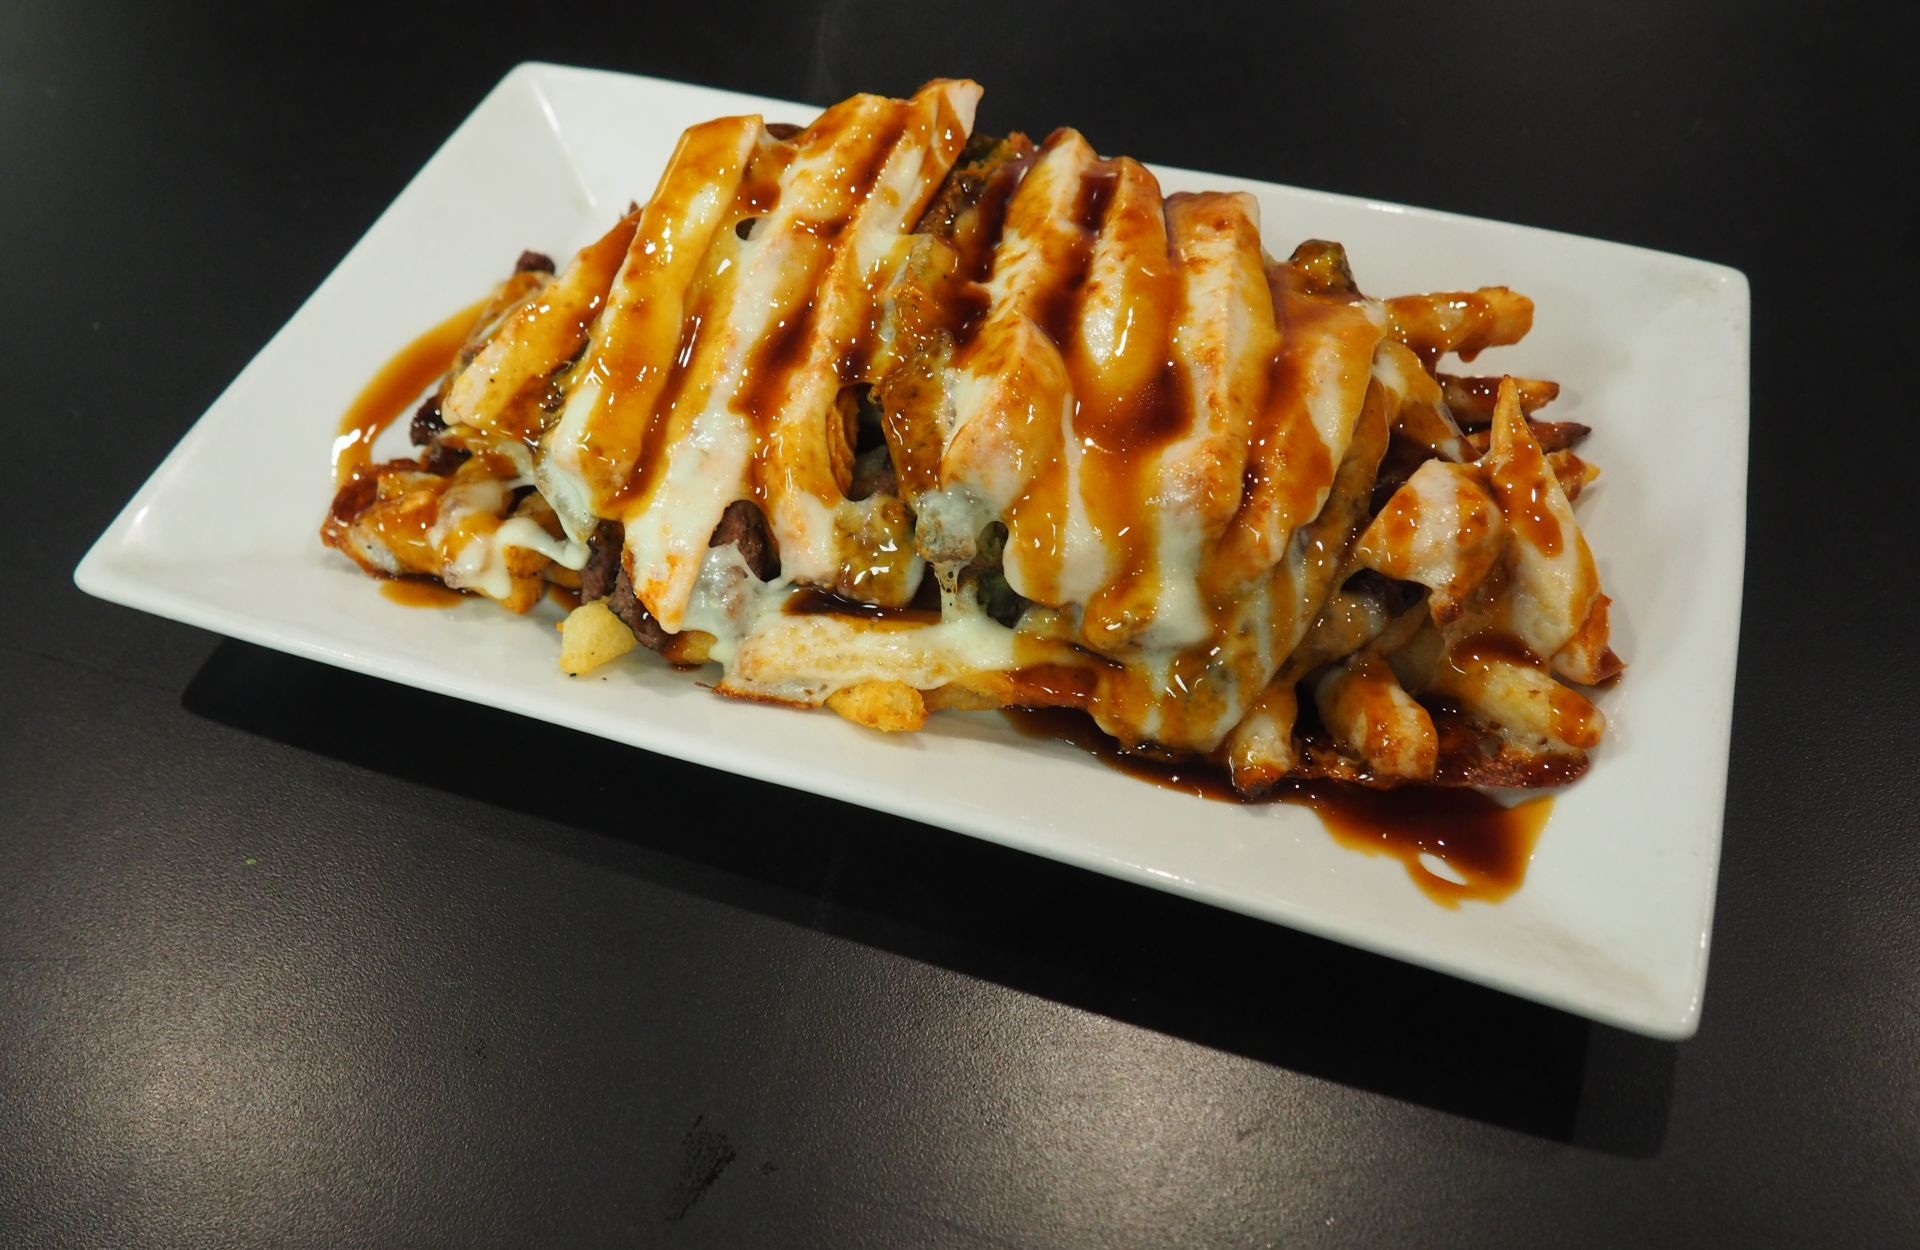 Grilled sliced chicken with cheese and gravy over fries